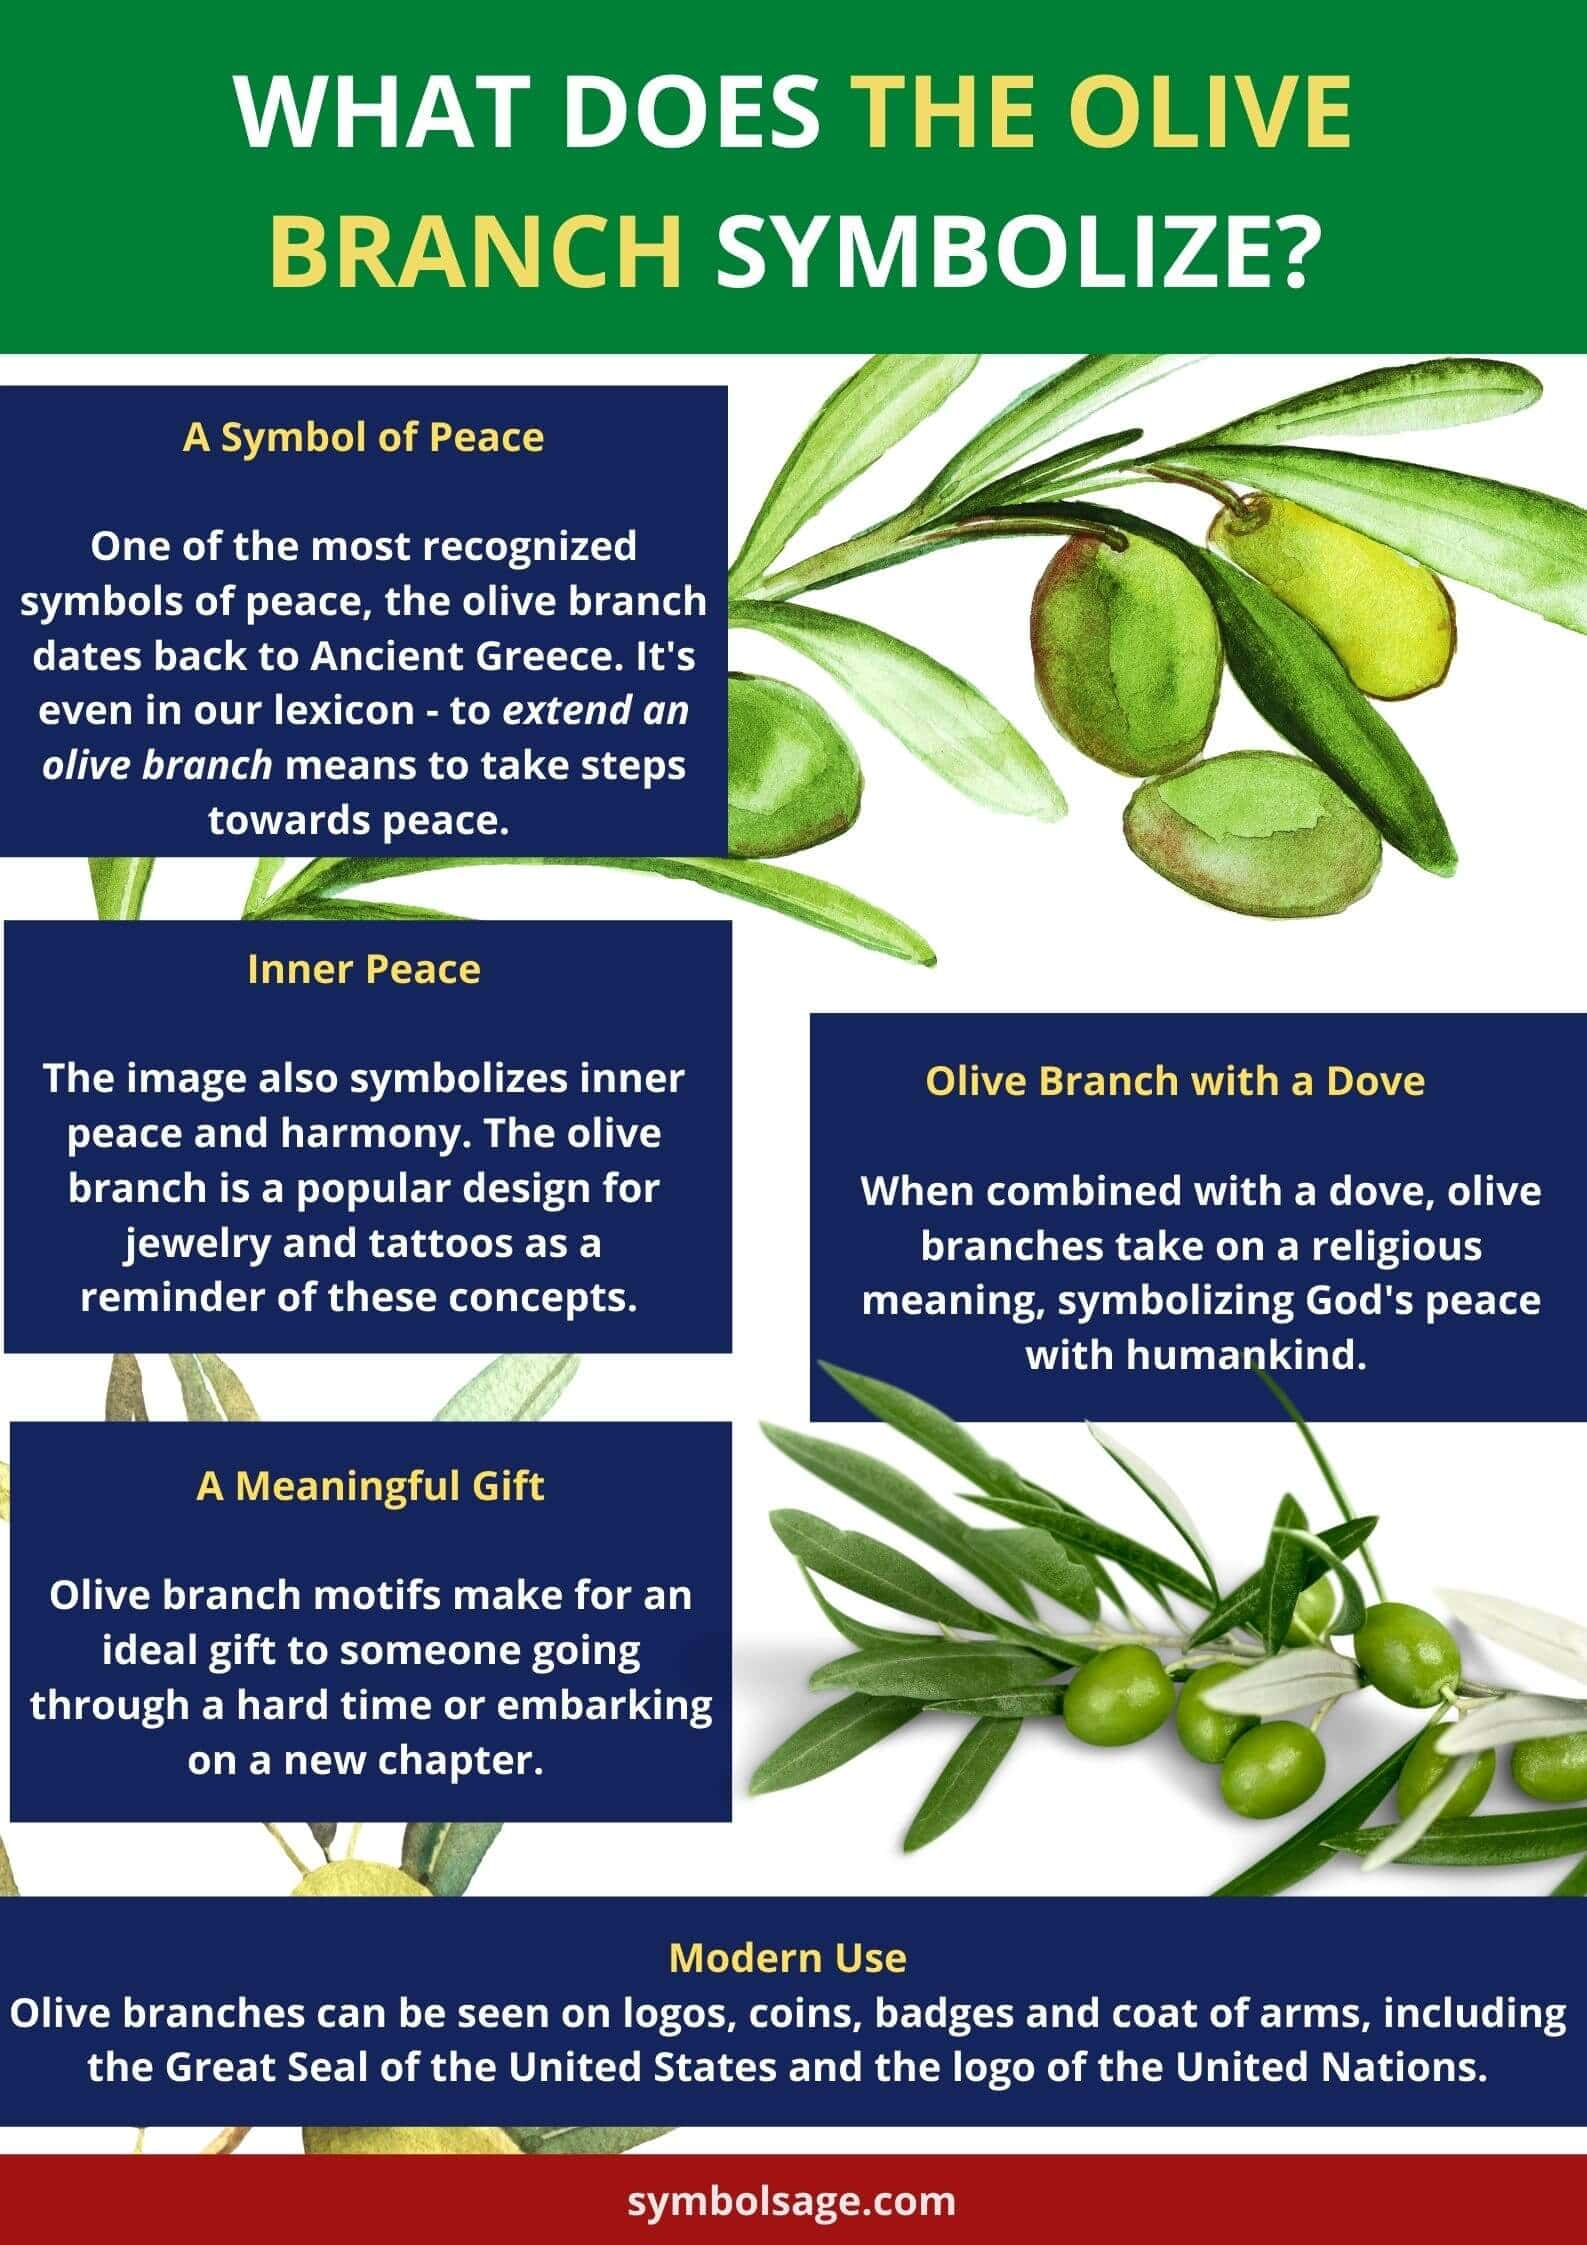 Olive branch origins and meaning